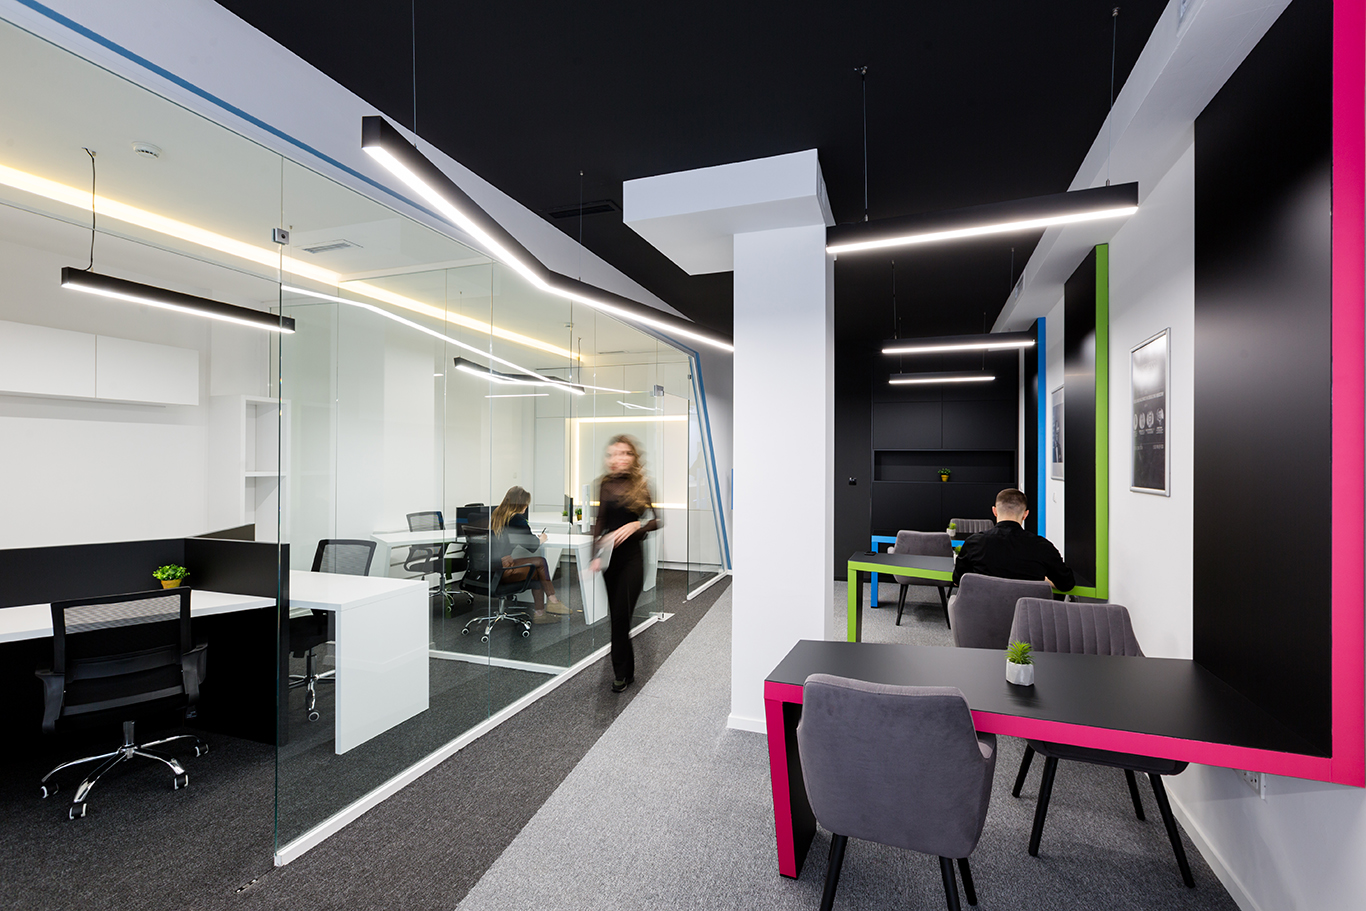 ICK invites Tech Startups to join its Business Incubator